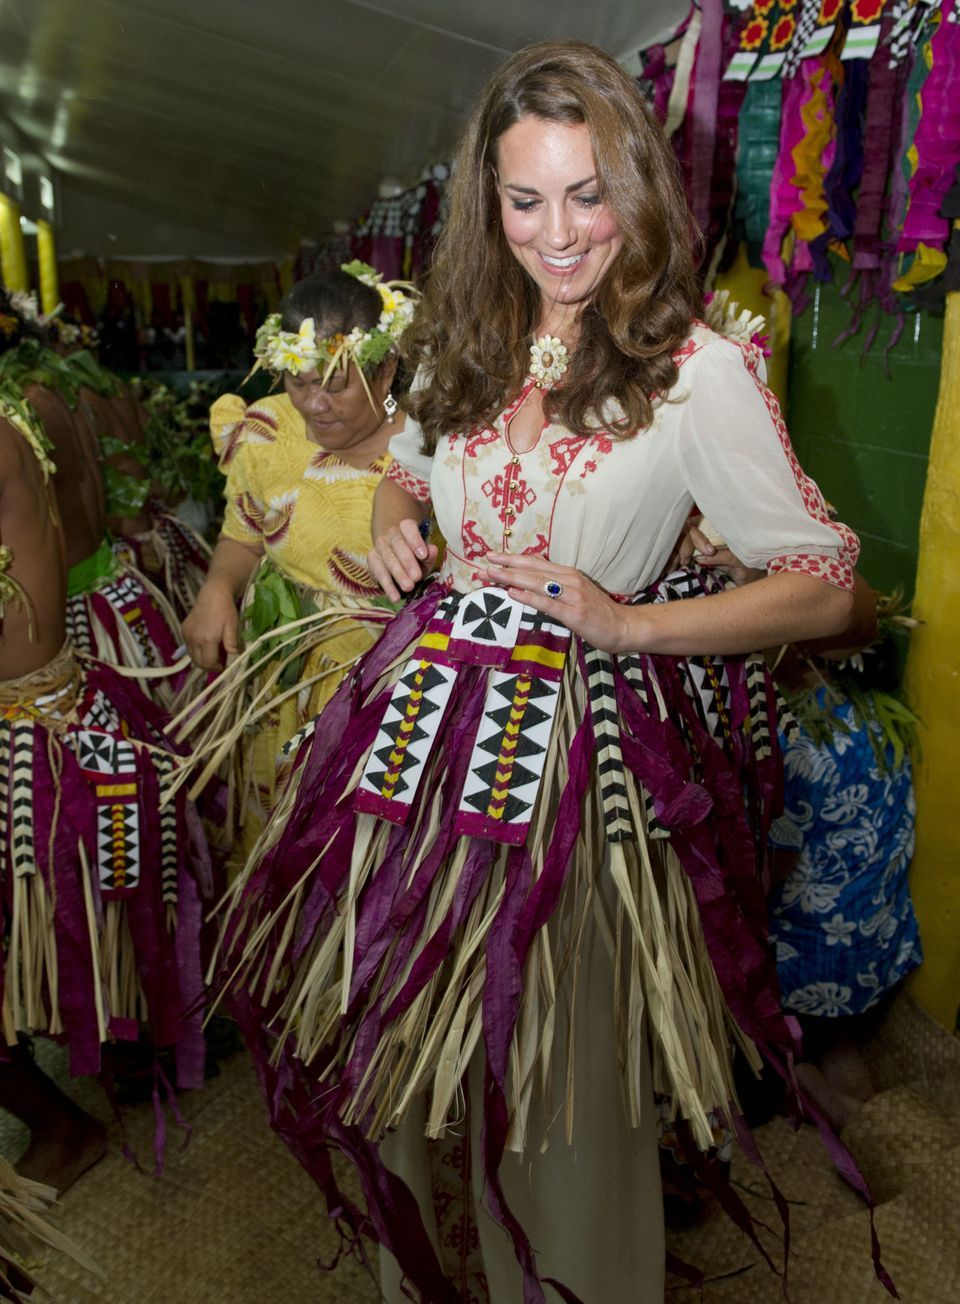 The Duchess of Cambridge gets into costume with locals at Vaiaku Falekaupule during a visit to Tuvalu, Solomon Islands, durin